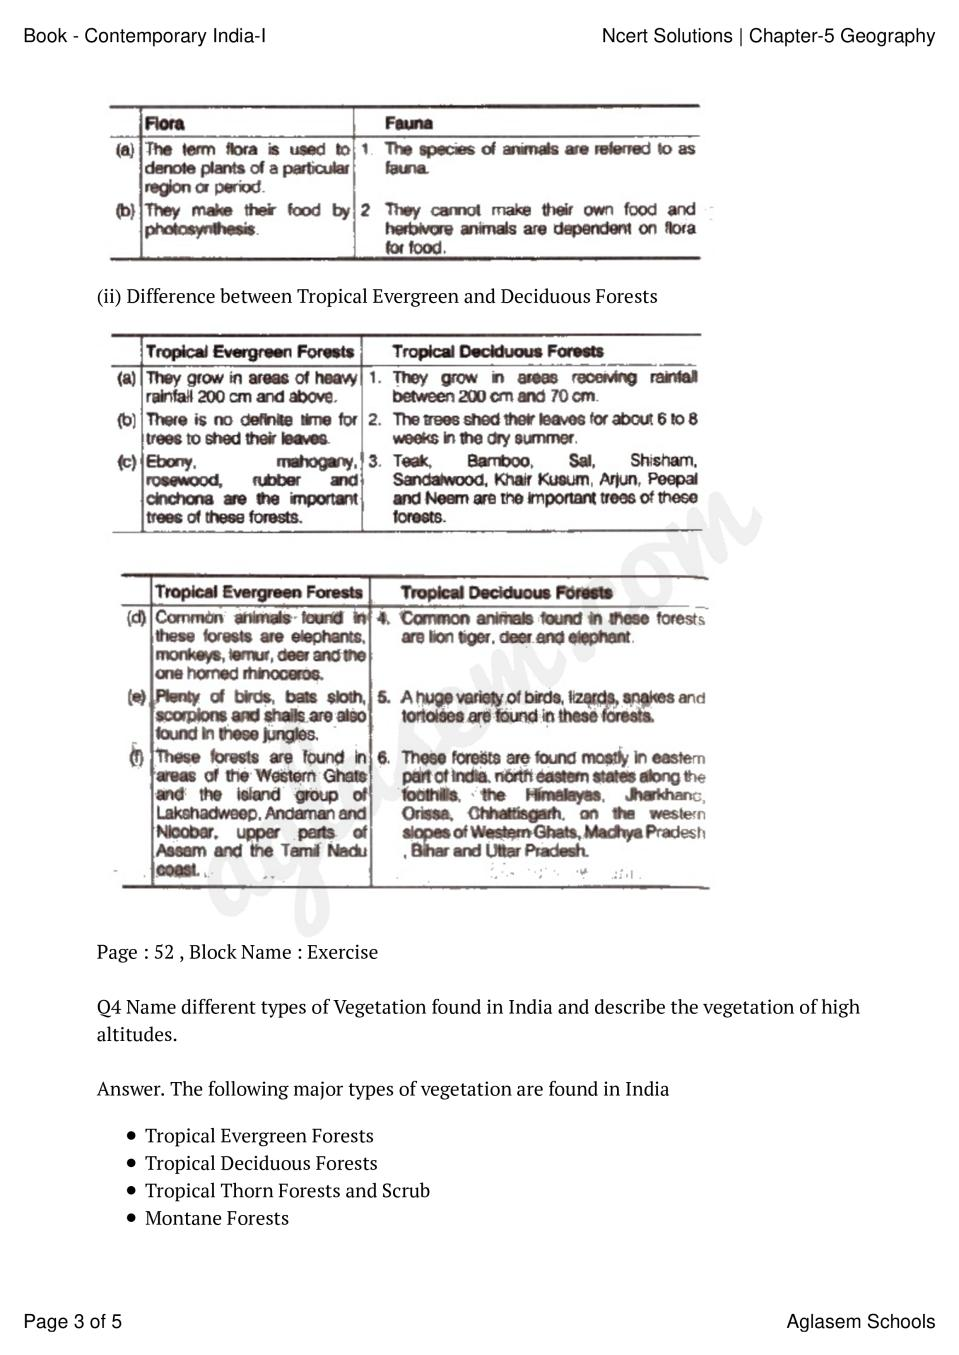 NCERT Solutions for Class 9 Social Science Geography Chapter